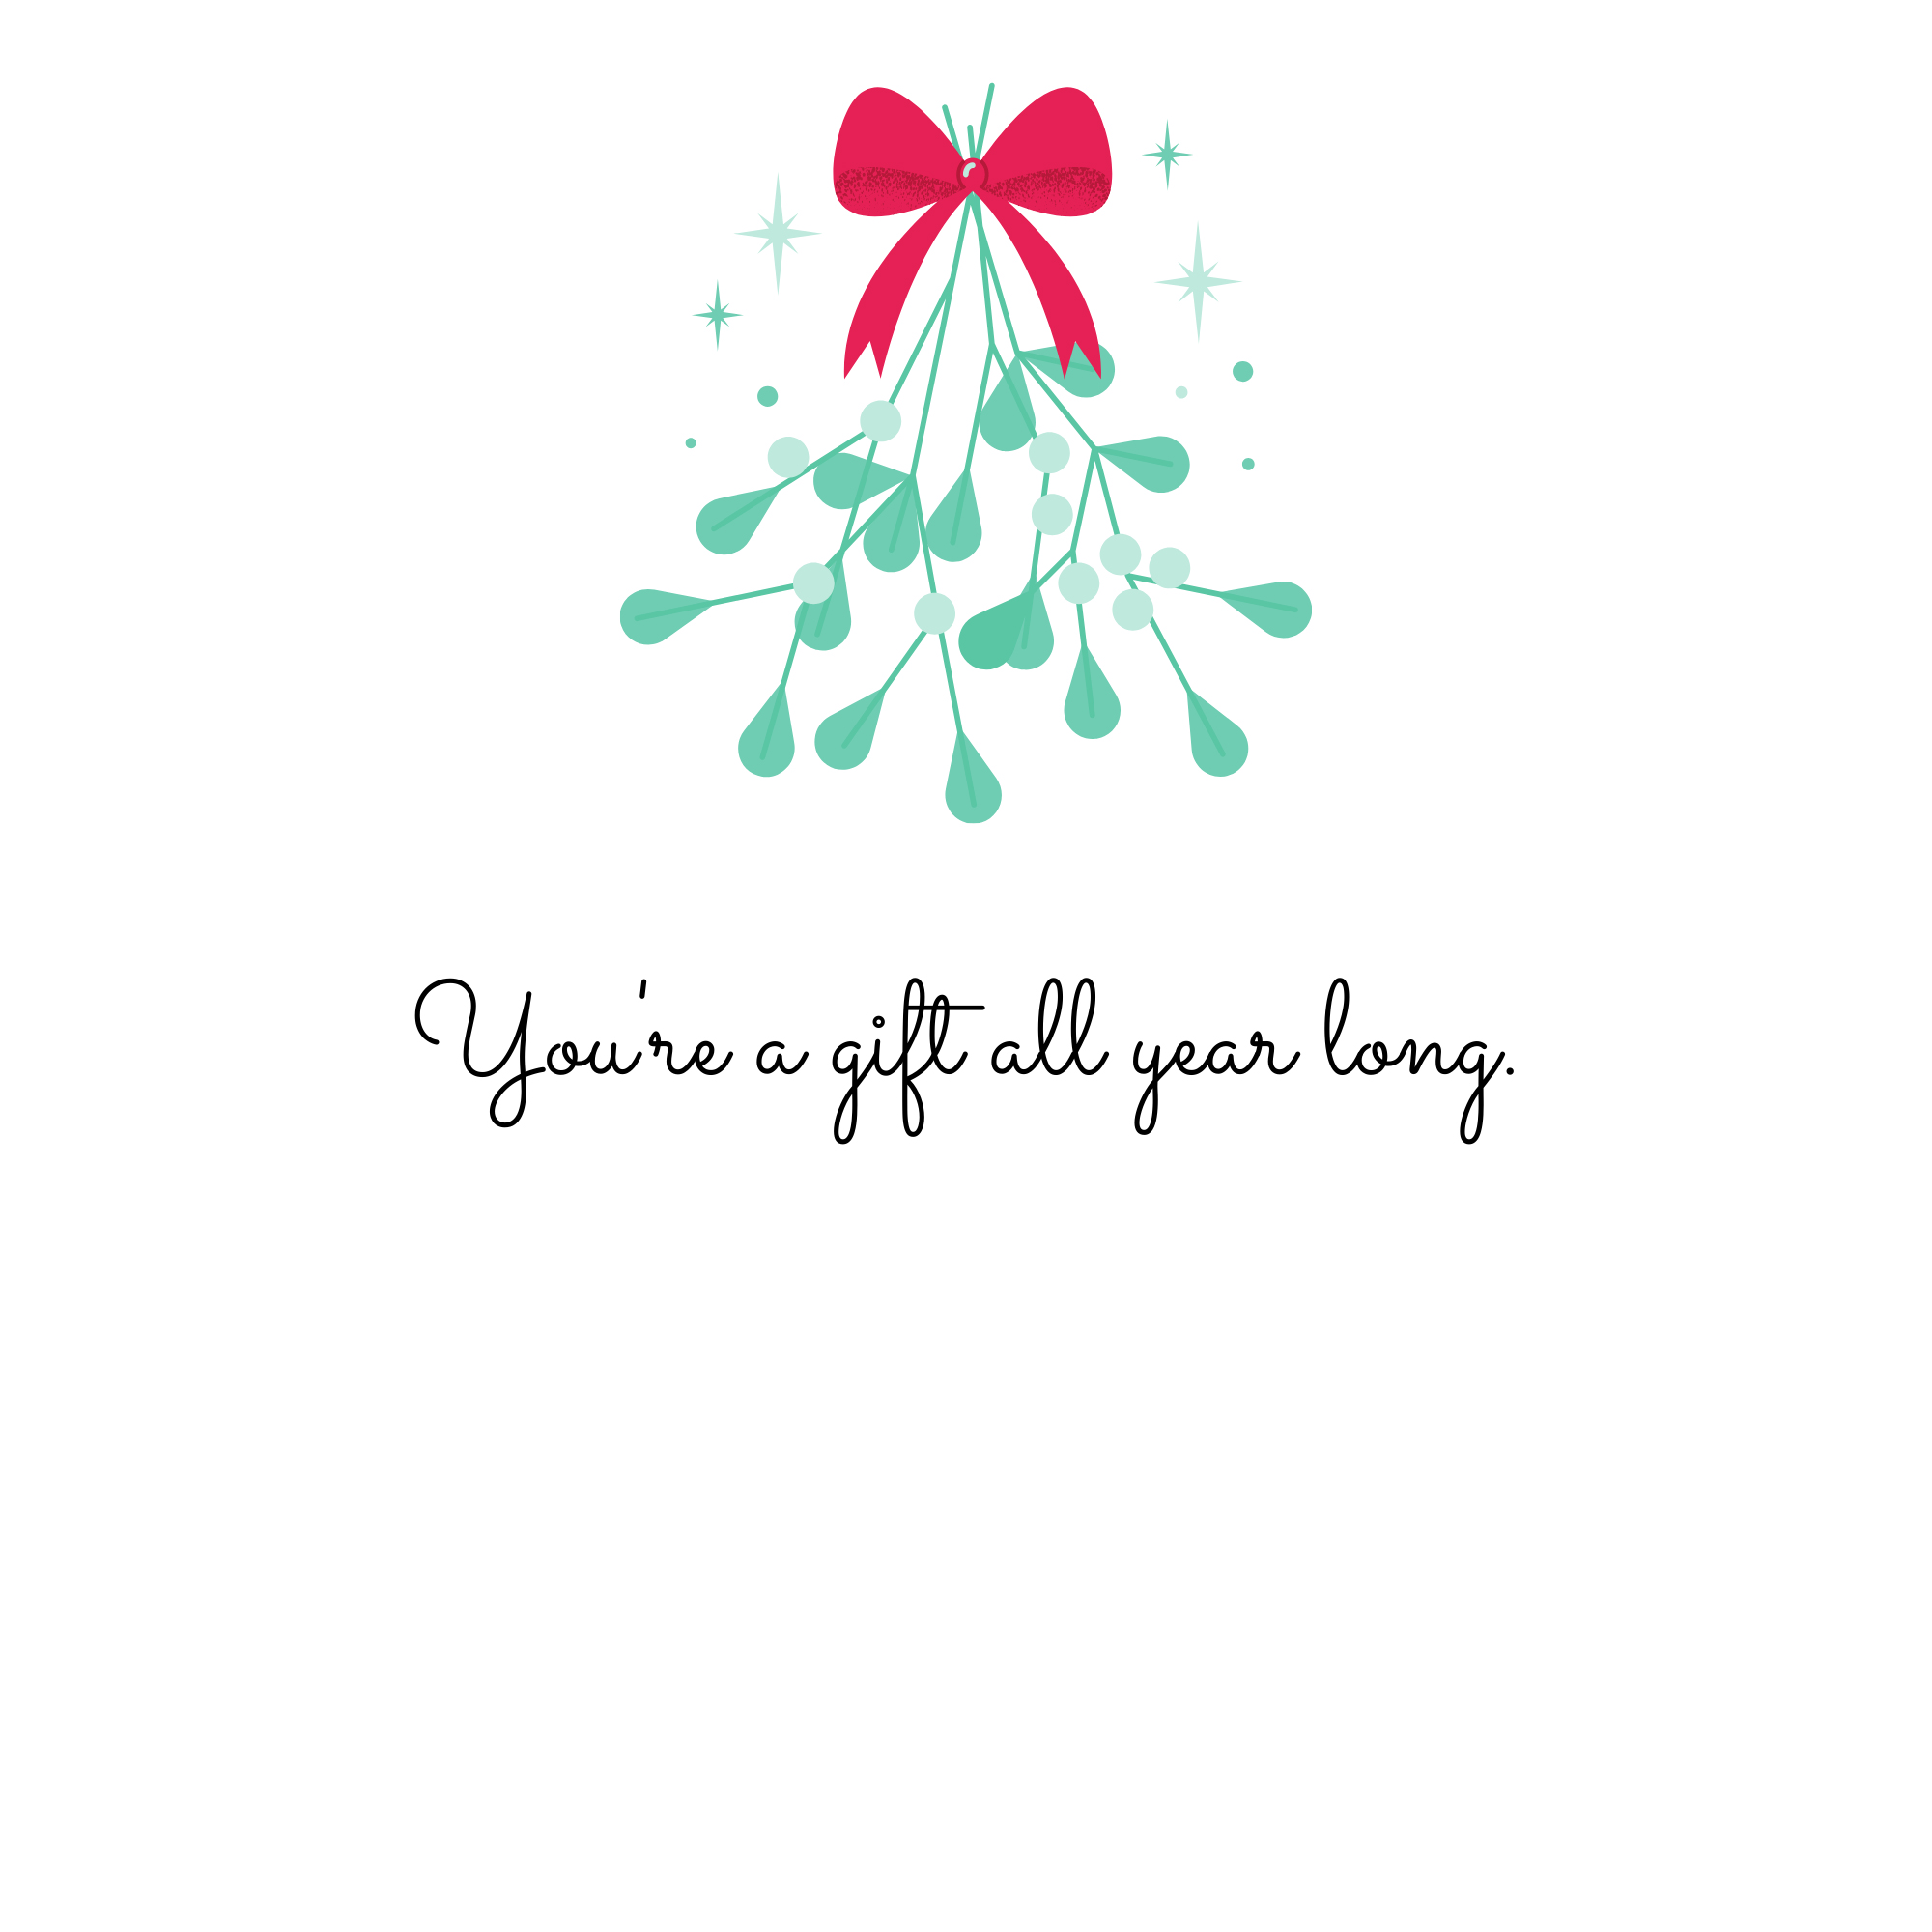 You're a gift all year long.